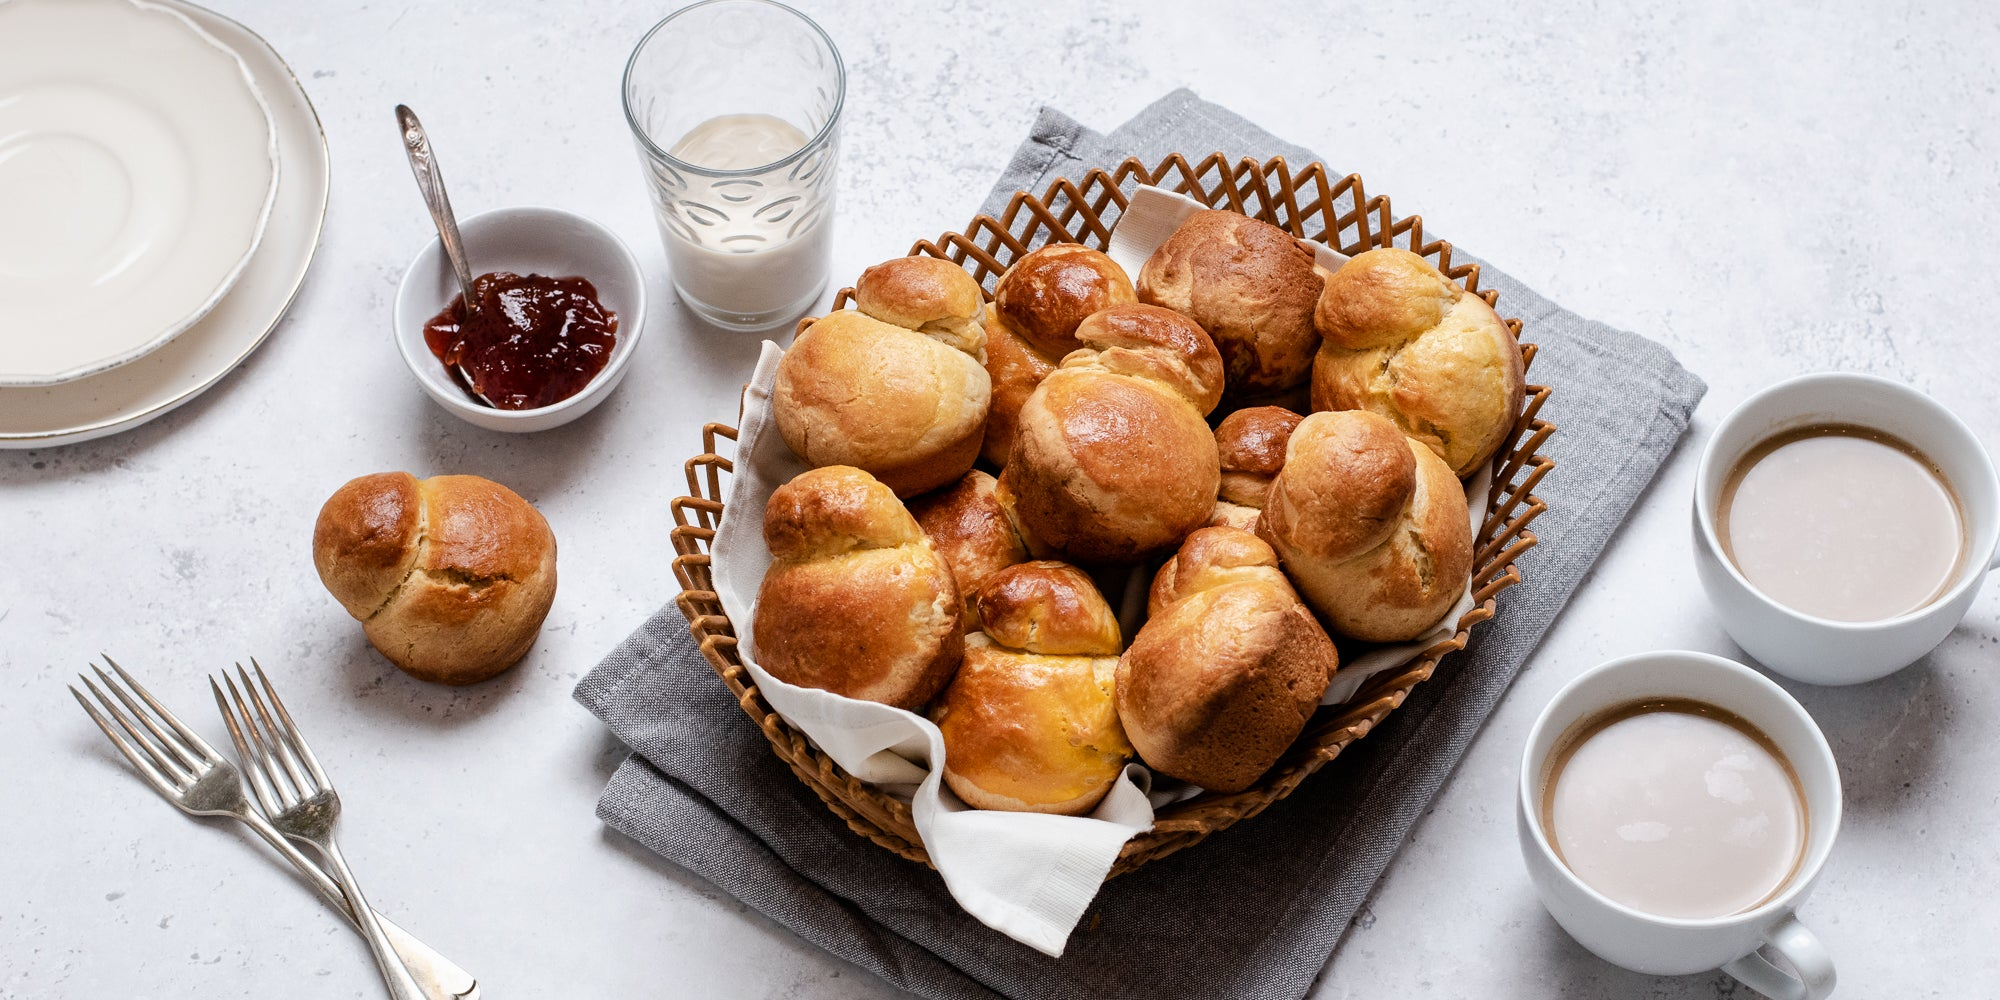 A batch of golden Brioche in a wicker basket, next to cups of tea, a bowl of jam and a glass of milk